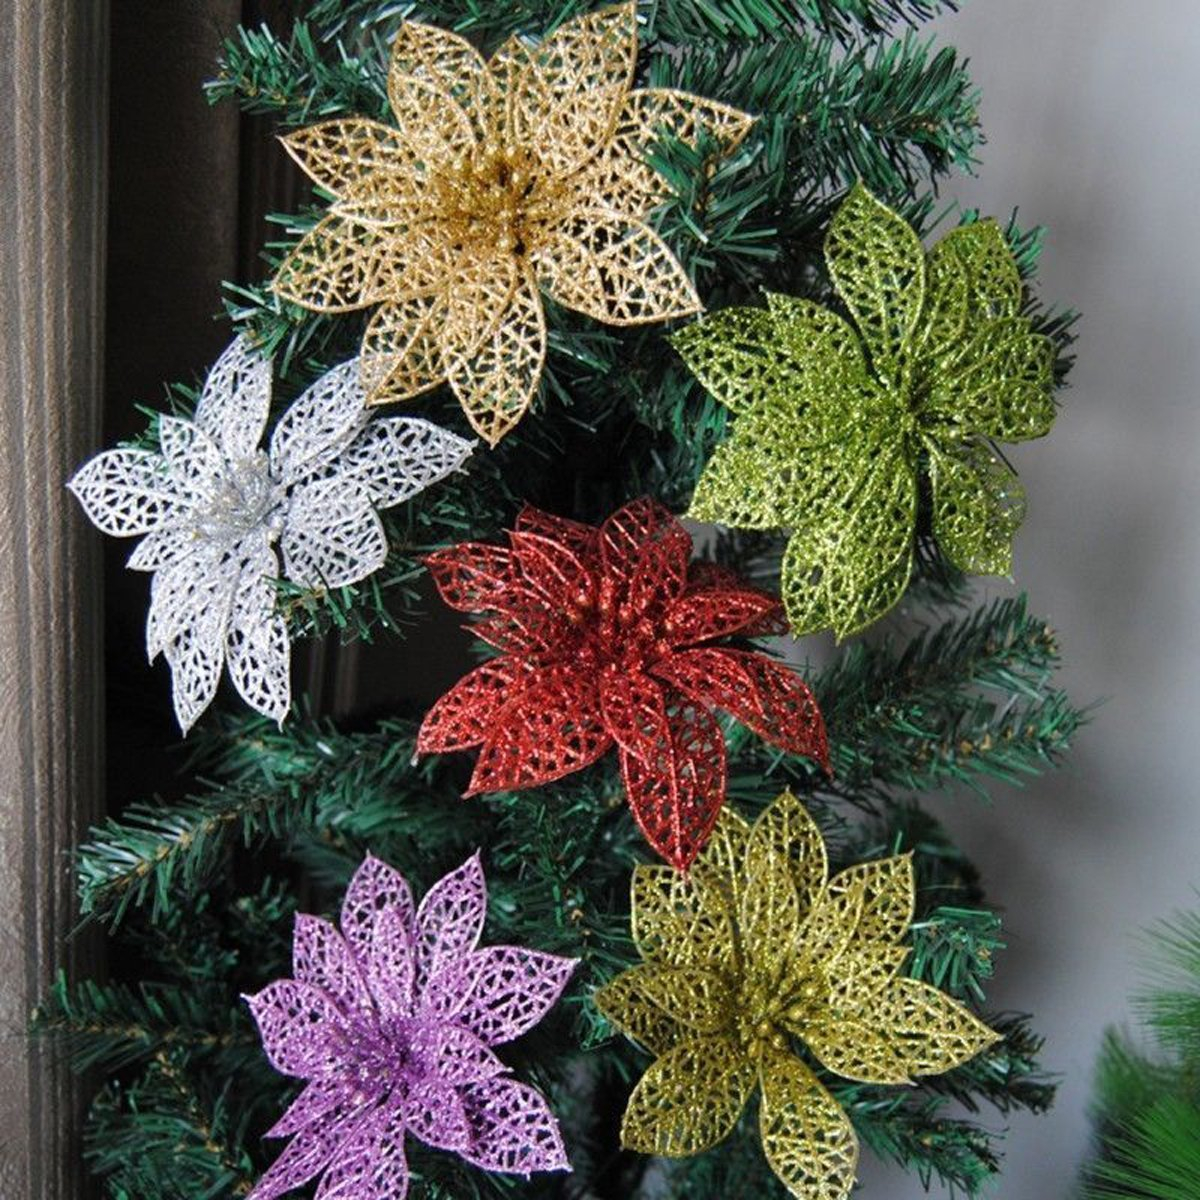 Wedding Tree Decorations Zerone Zerone Christmas Flowers Glitter Hollow Wedding Party Decor